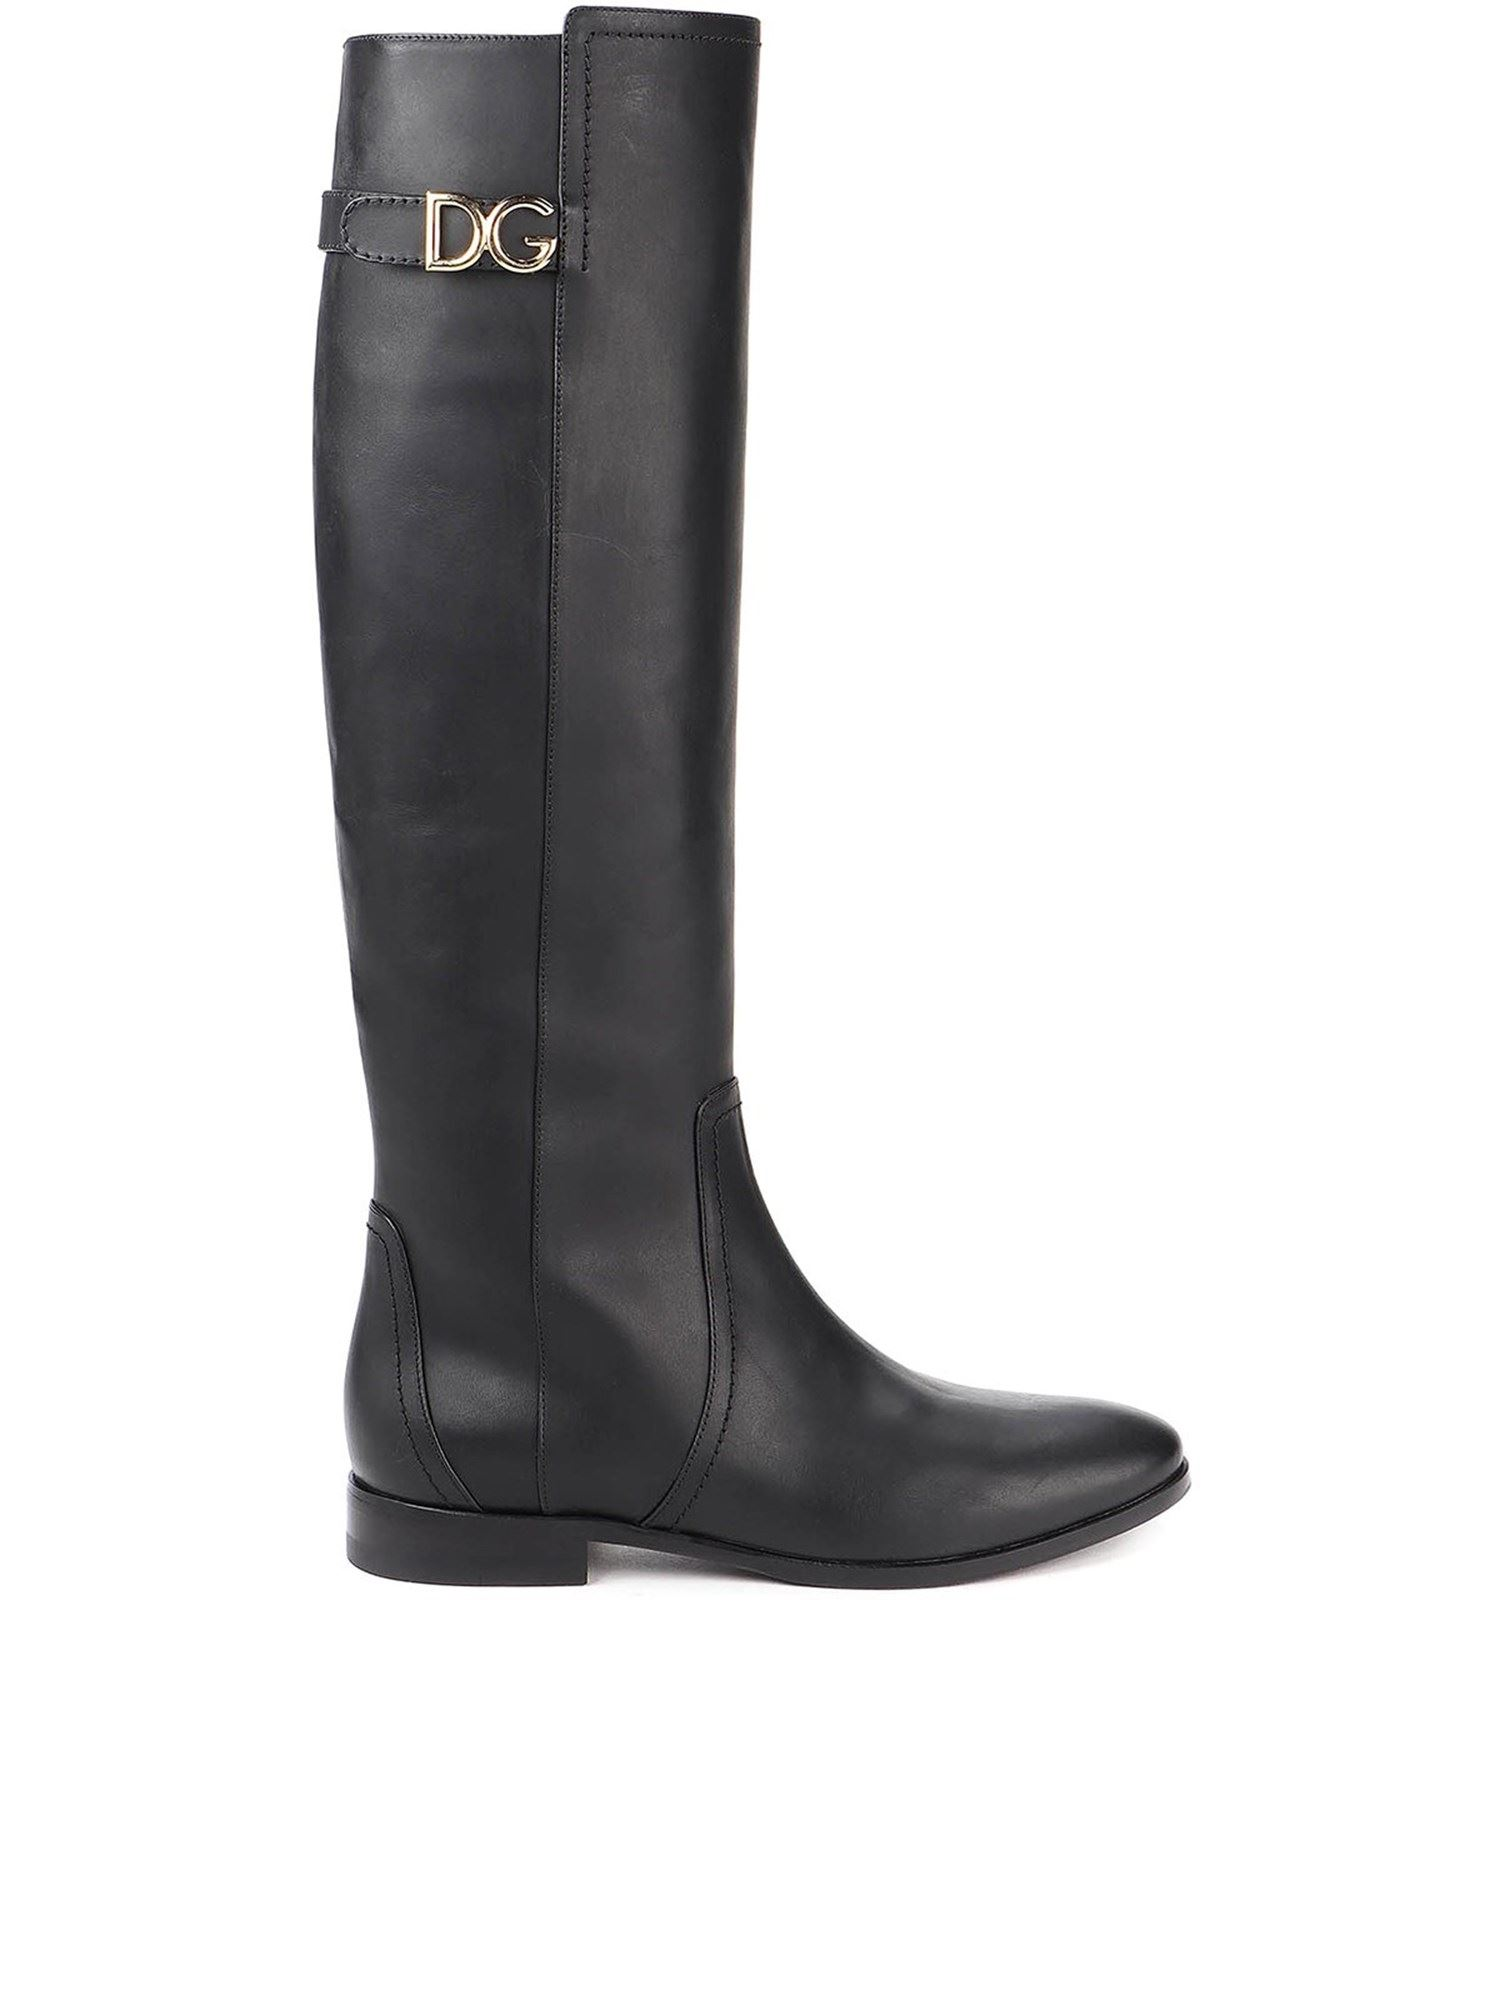 Dolce & Gabbana Leathers DG LOGO COW LEATHER BOOTS IN BLACK